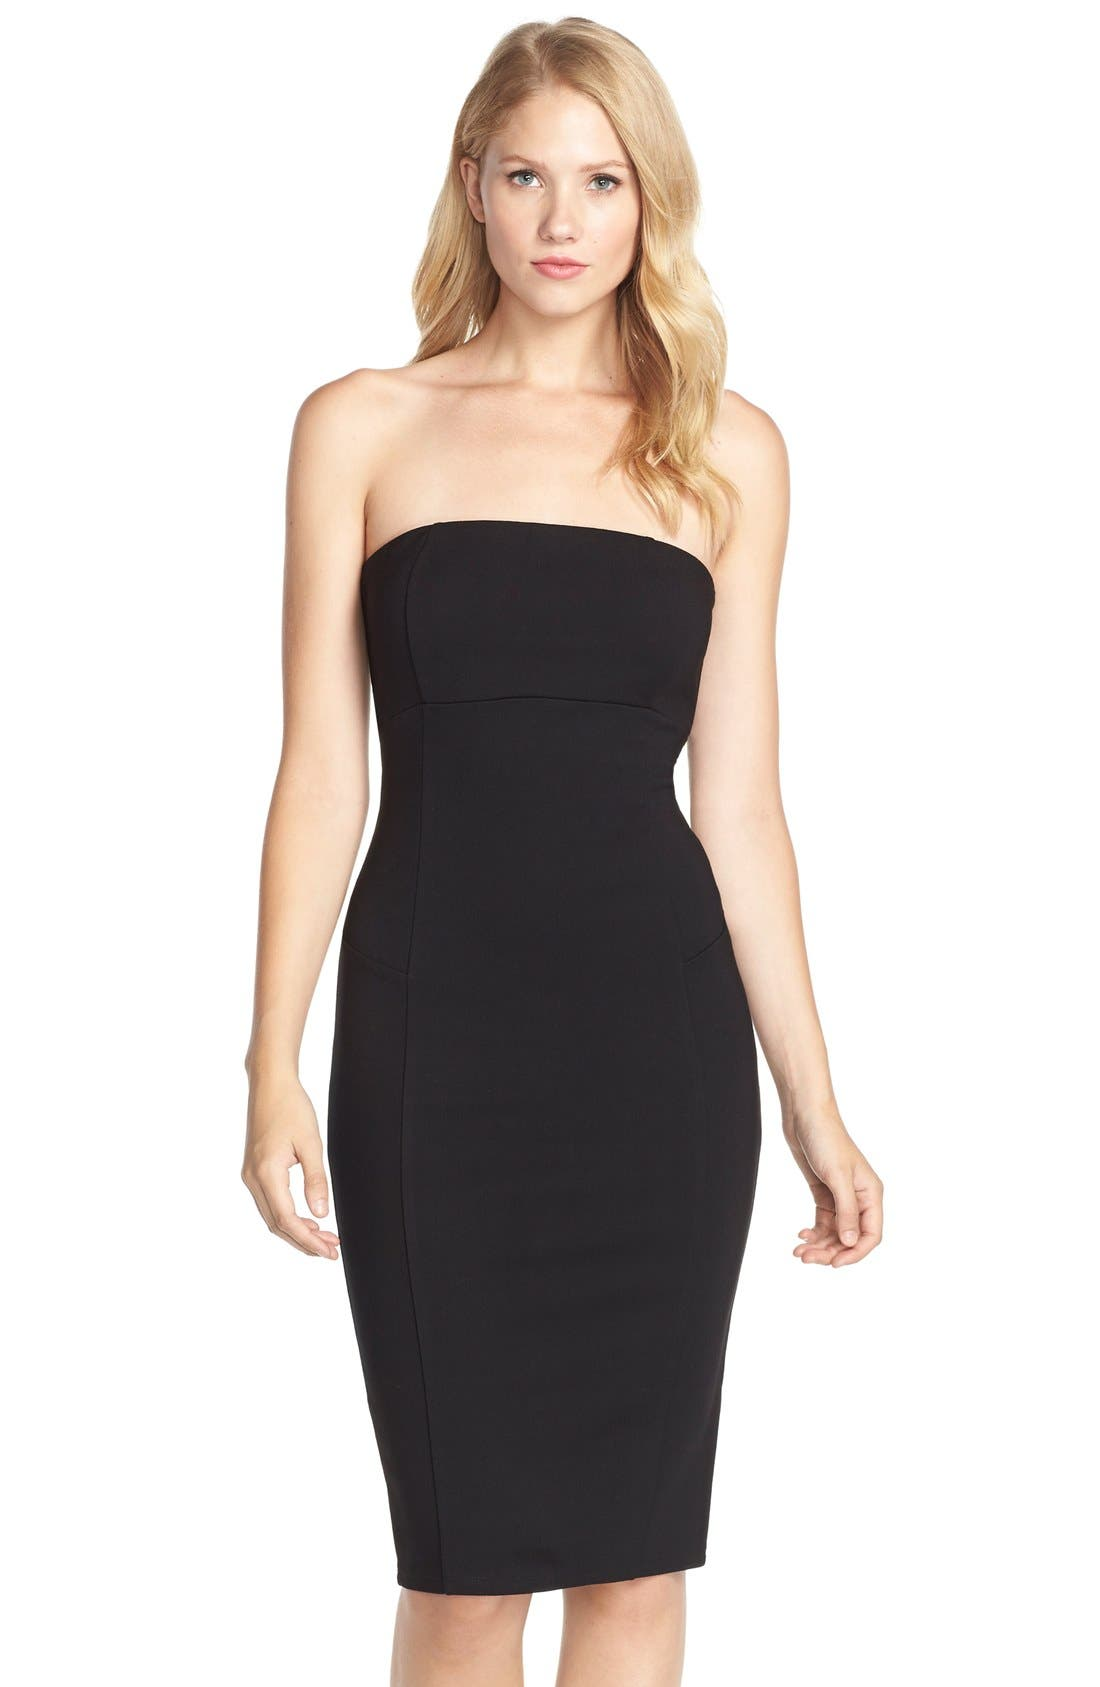 Alternate Image 1 Selected - Felicity & Coco Strapless Knit Body-Con Dress (Nordstrom Exclusive)